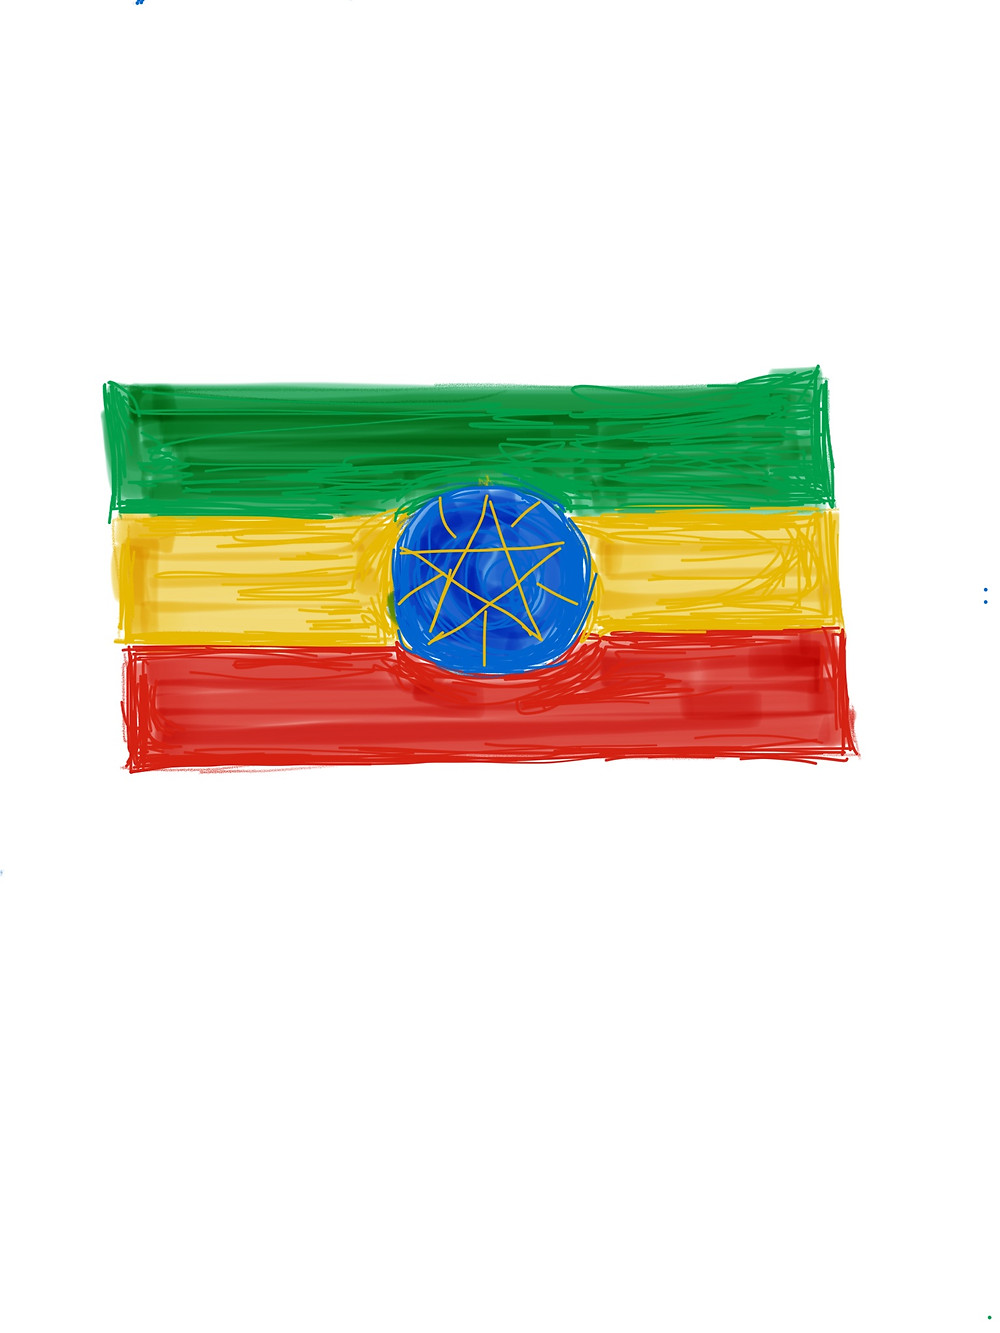 Ethiopia's flag includes a blue medallion representing peace and a yellow star standing for diversity and unity. This emblem was added after the defeat of the Derg regime in 1996 (which was 1989 by the Ethiopian calendar). (iPad sketch by Lorraine Smith)